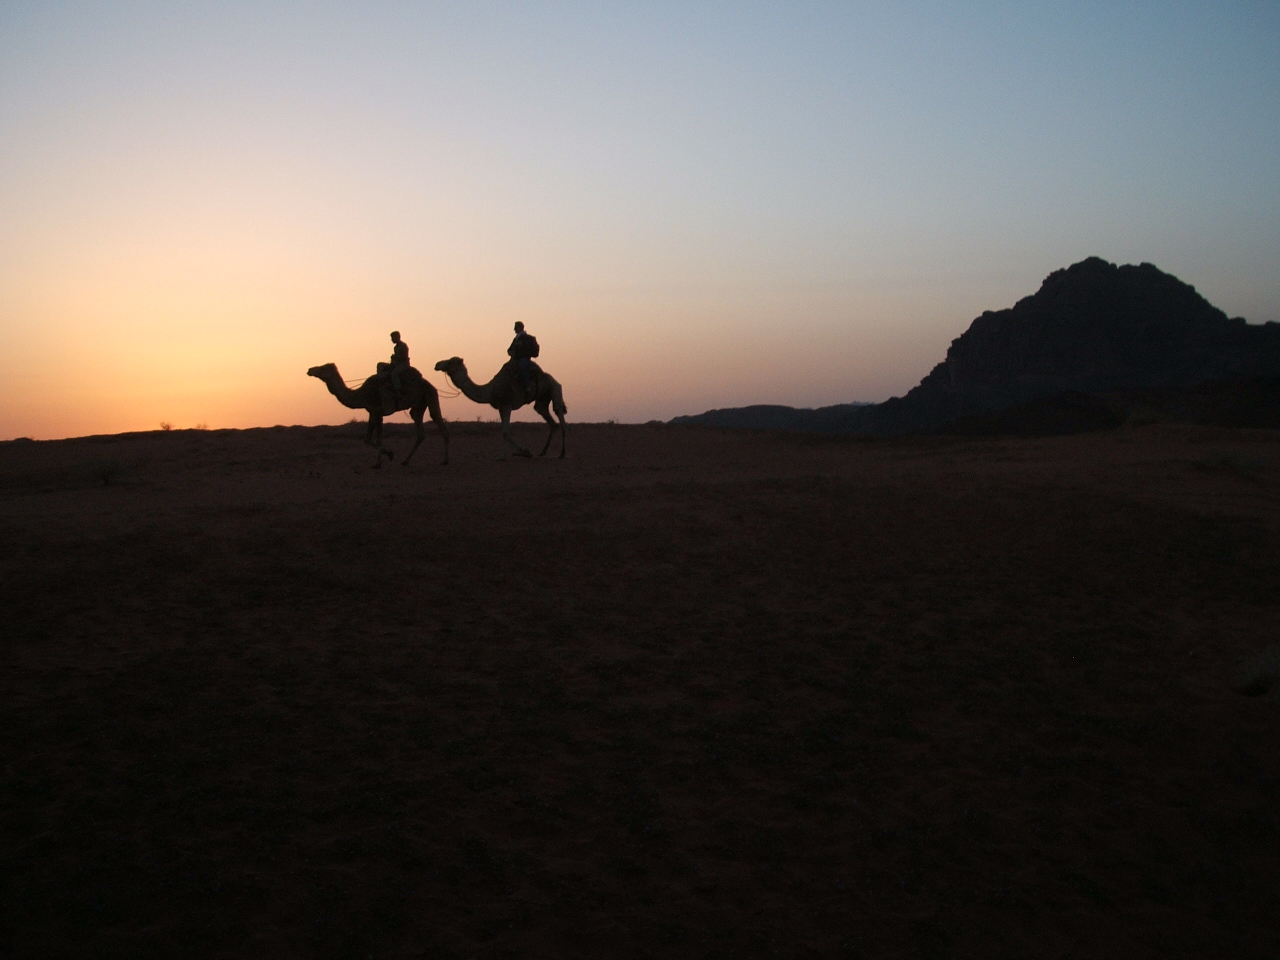 Wadi Rum Bedouin Camp - Camels in the sunset